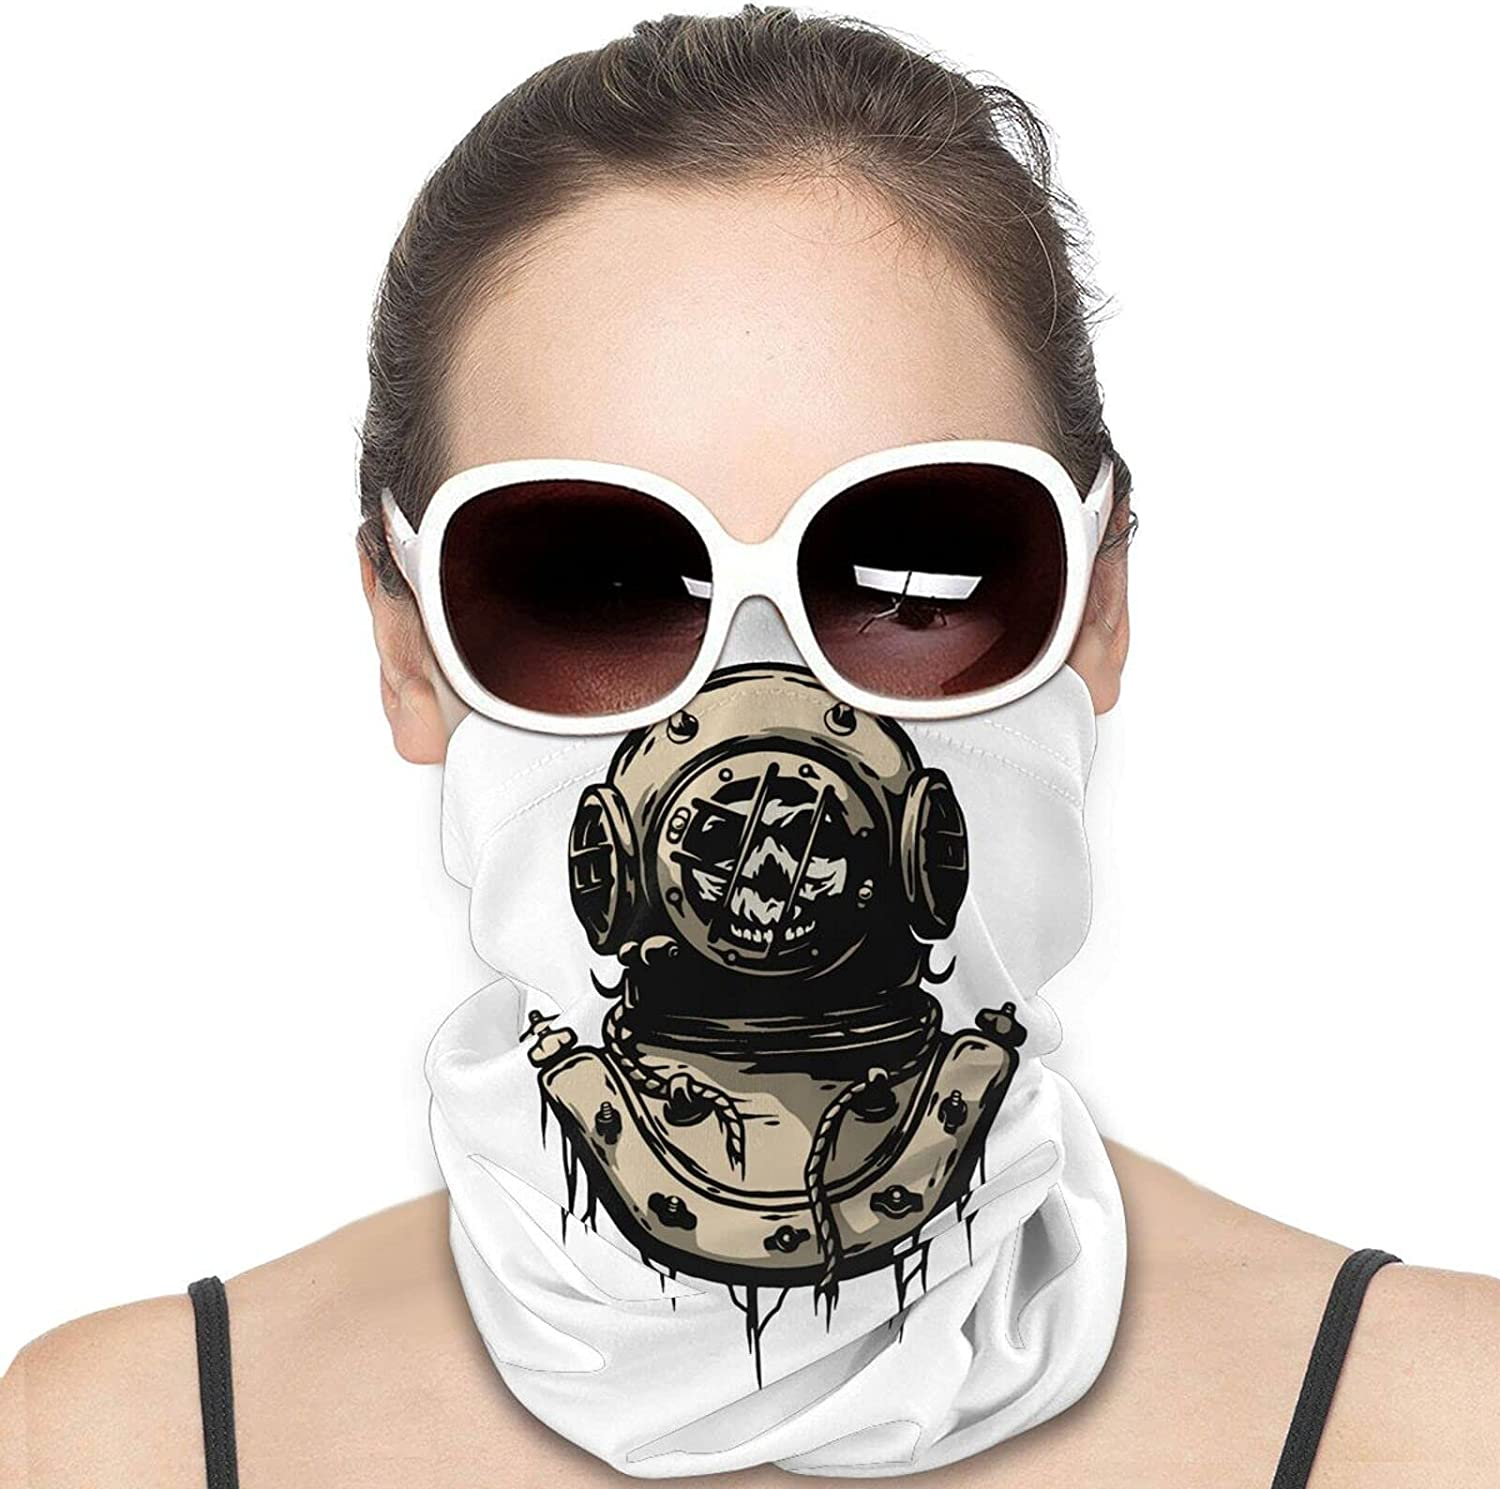 Old Iron Diving Helmet Round Neck Gaiter Bandnas Face Cover Uv Protection Prevent bask in Ice Scarf Headbands Perfect for Motorcycle Cycling Running Festival Raves Outdoors